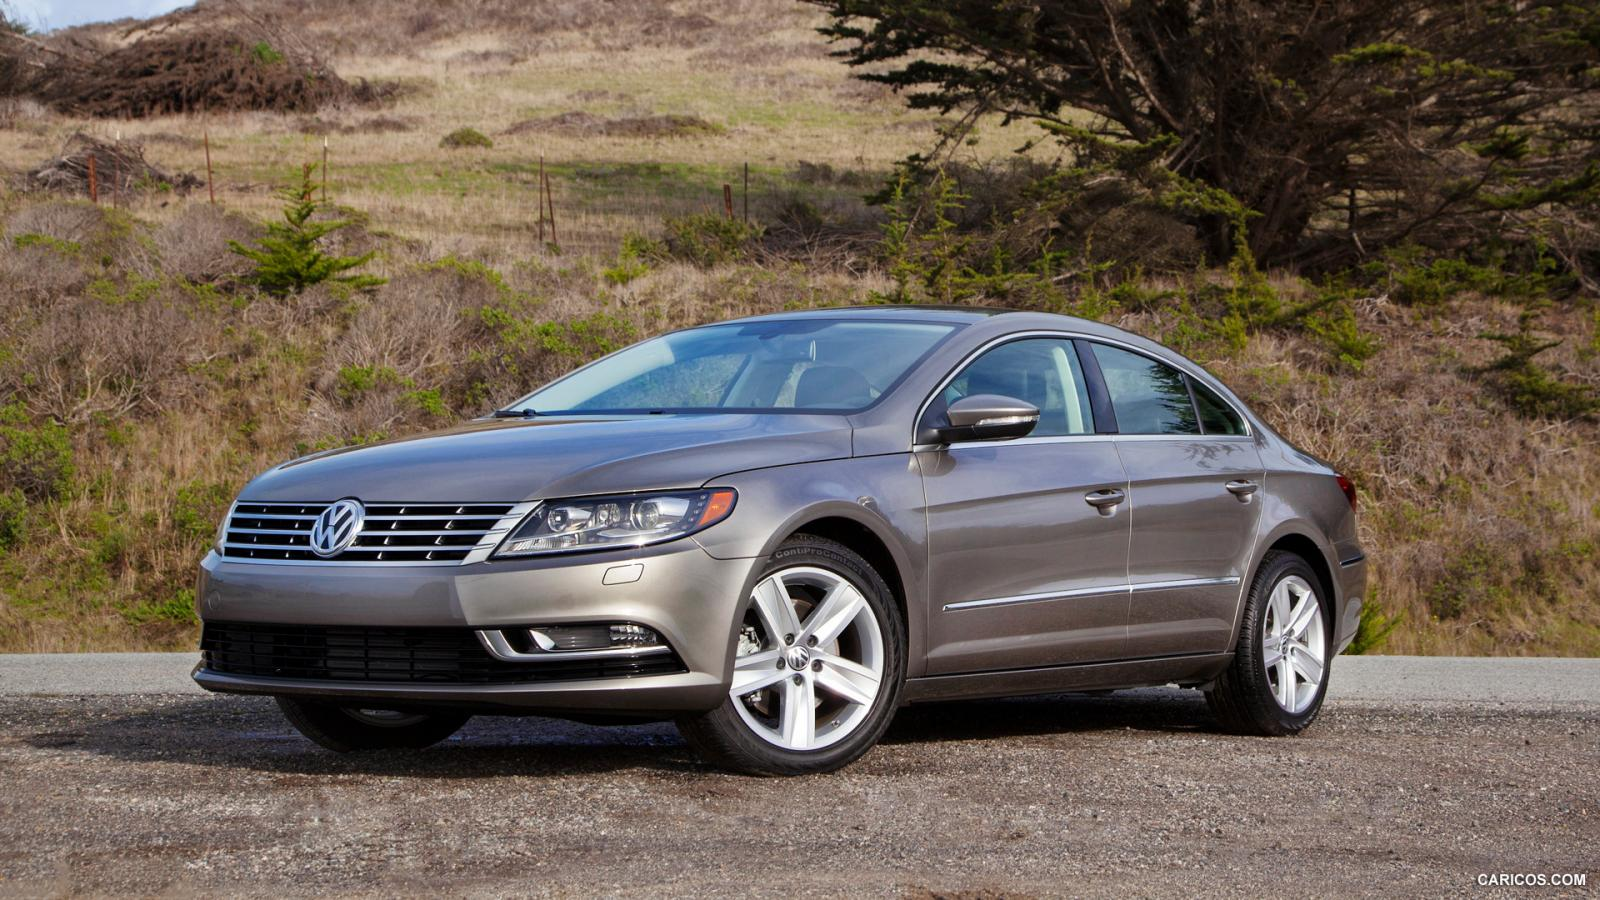 2014 volkswagen cc information and photos zombiedrive. Black Bedroom Furniture Sets. Home Design Ideas